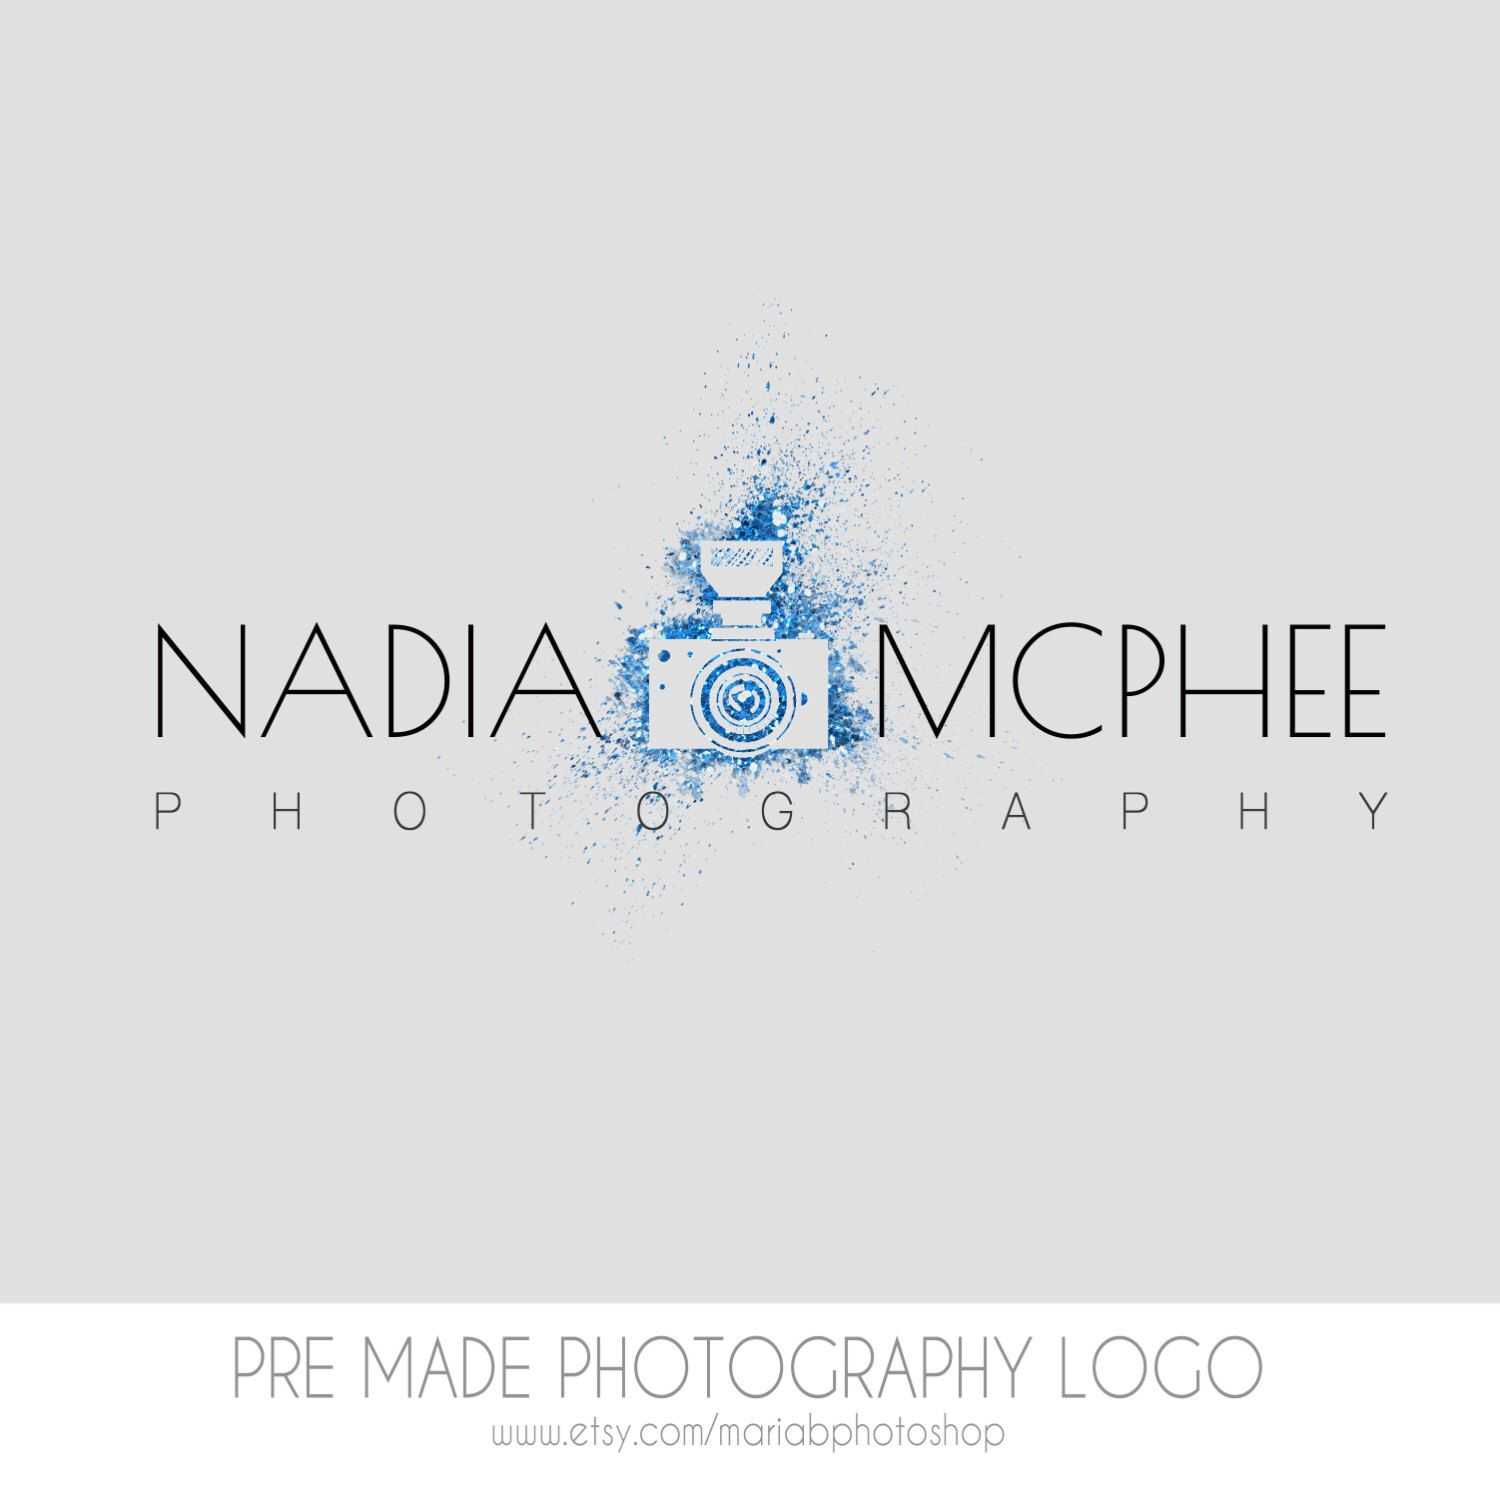 Pre made Photography Logo, watercolor design, photography, watermark, painted, OOAK design - Newborn photography logo, maternity logo by MariaBPhotoShop on Etsy https://www.etsy.com/listing/207862302/pre-made-photography-logo-watercolor